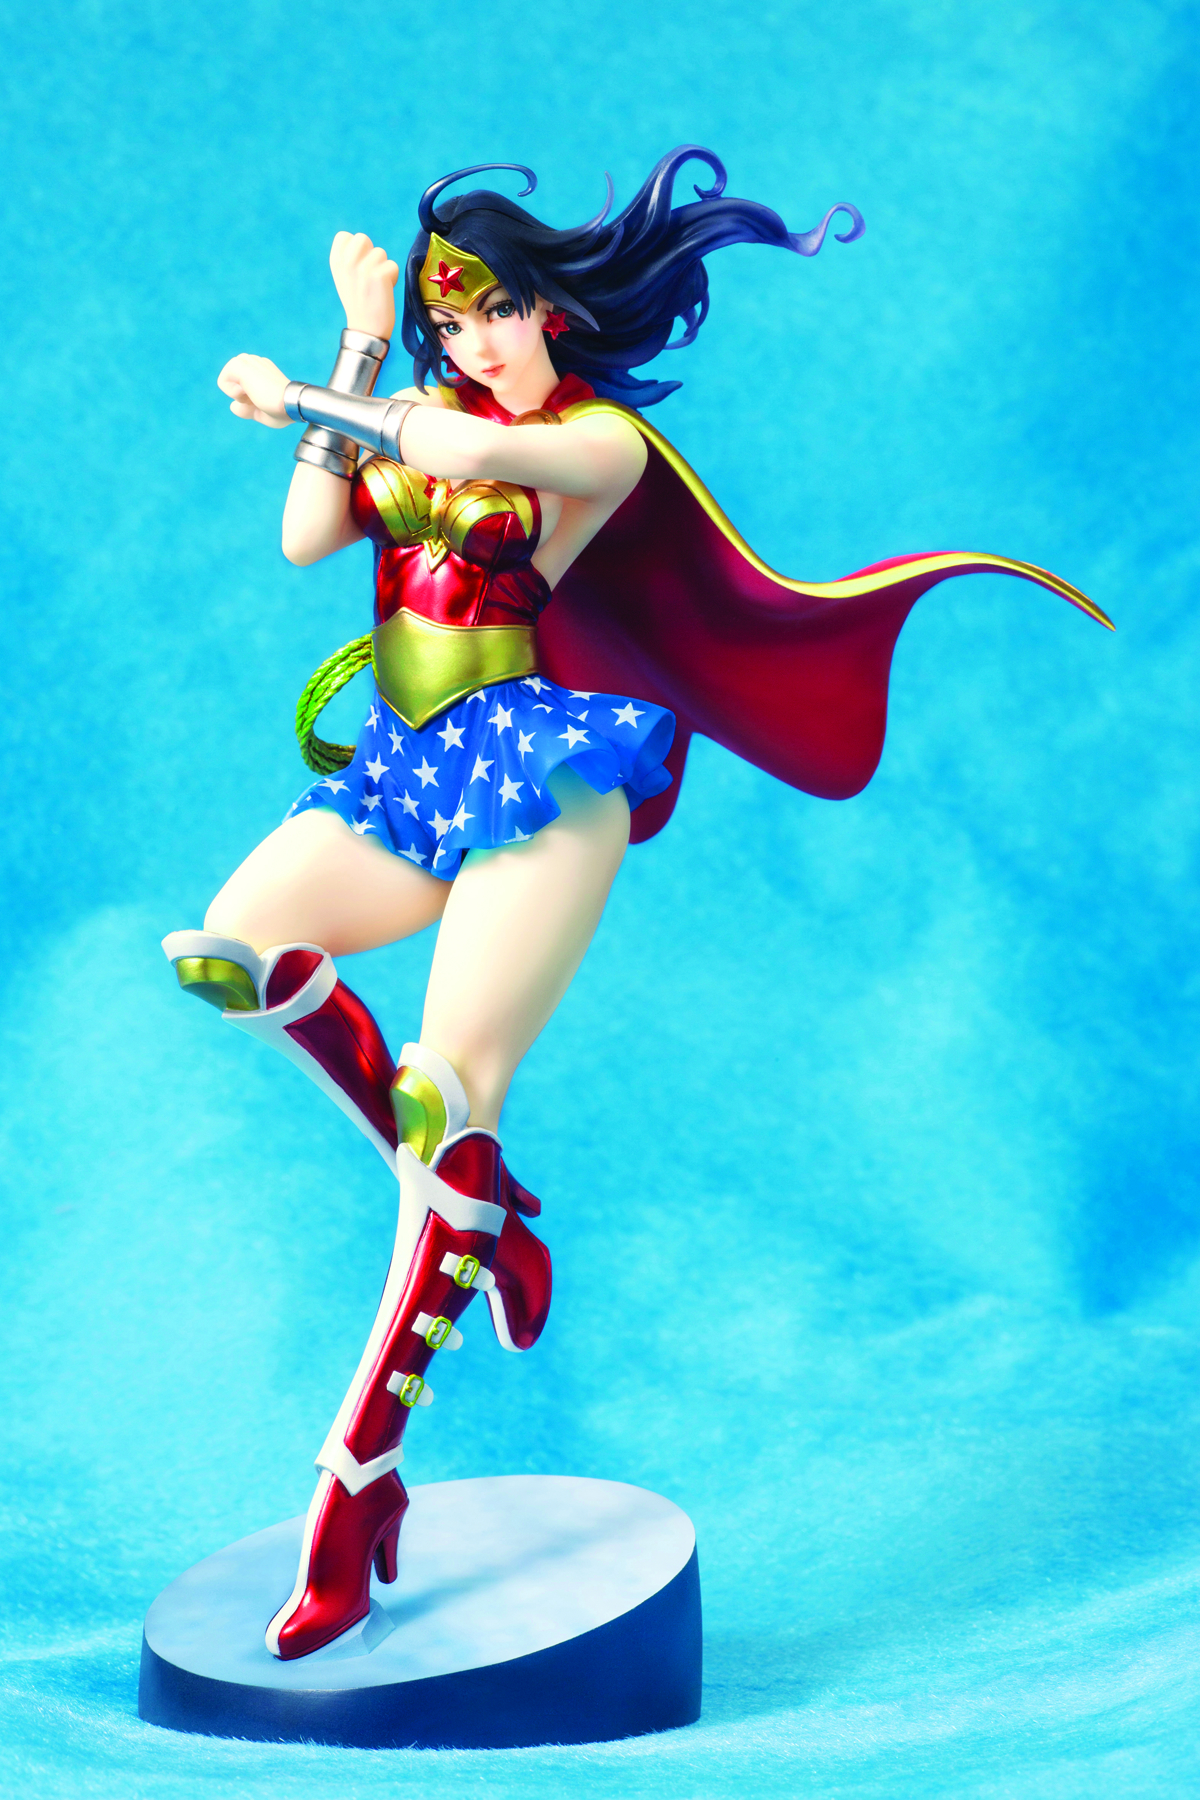 DC COMICS ARMORED WONDER WOMAN BISHOUJO STATUE